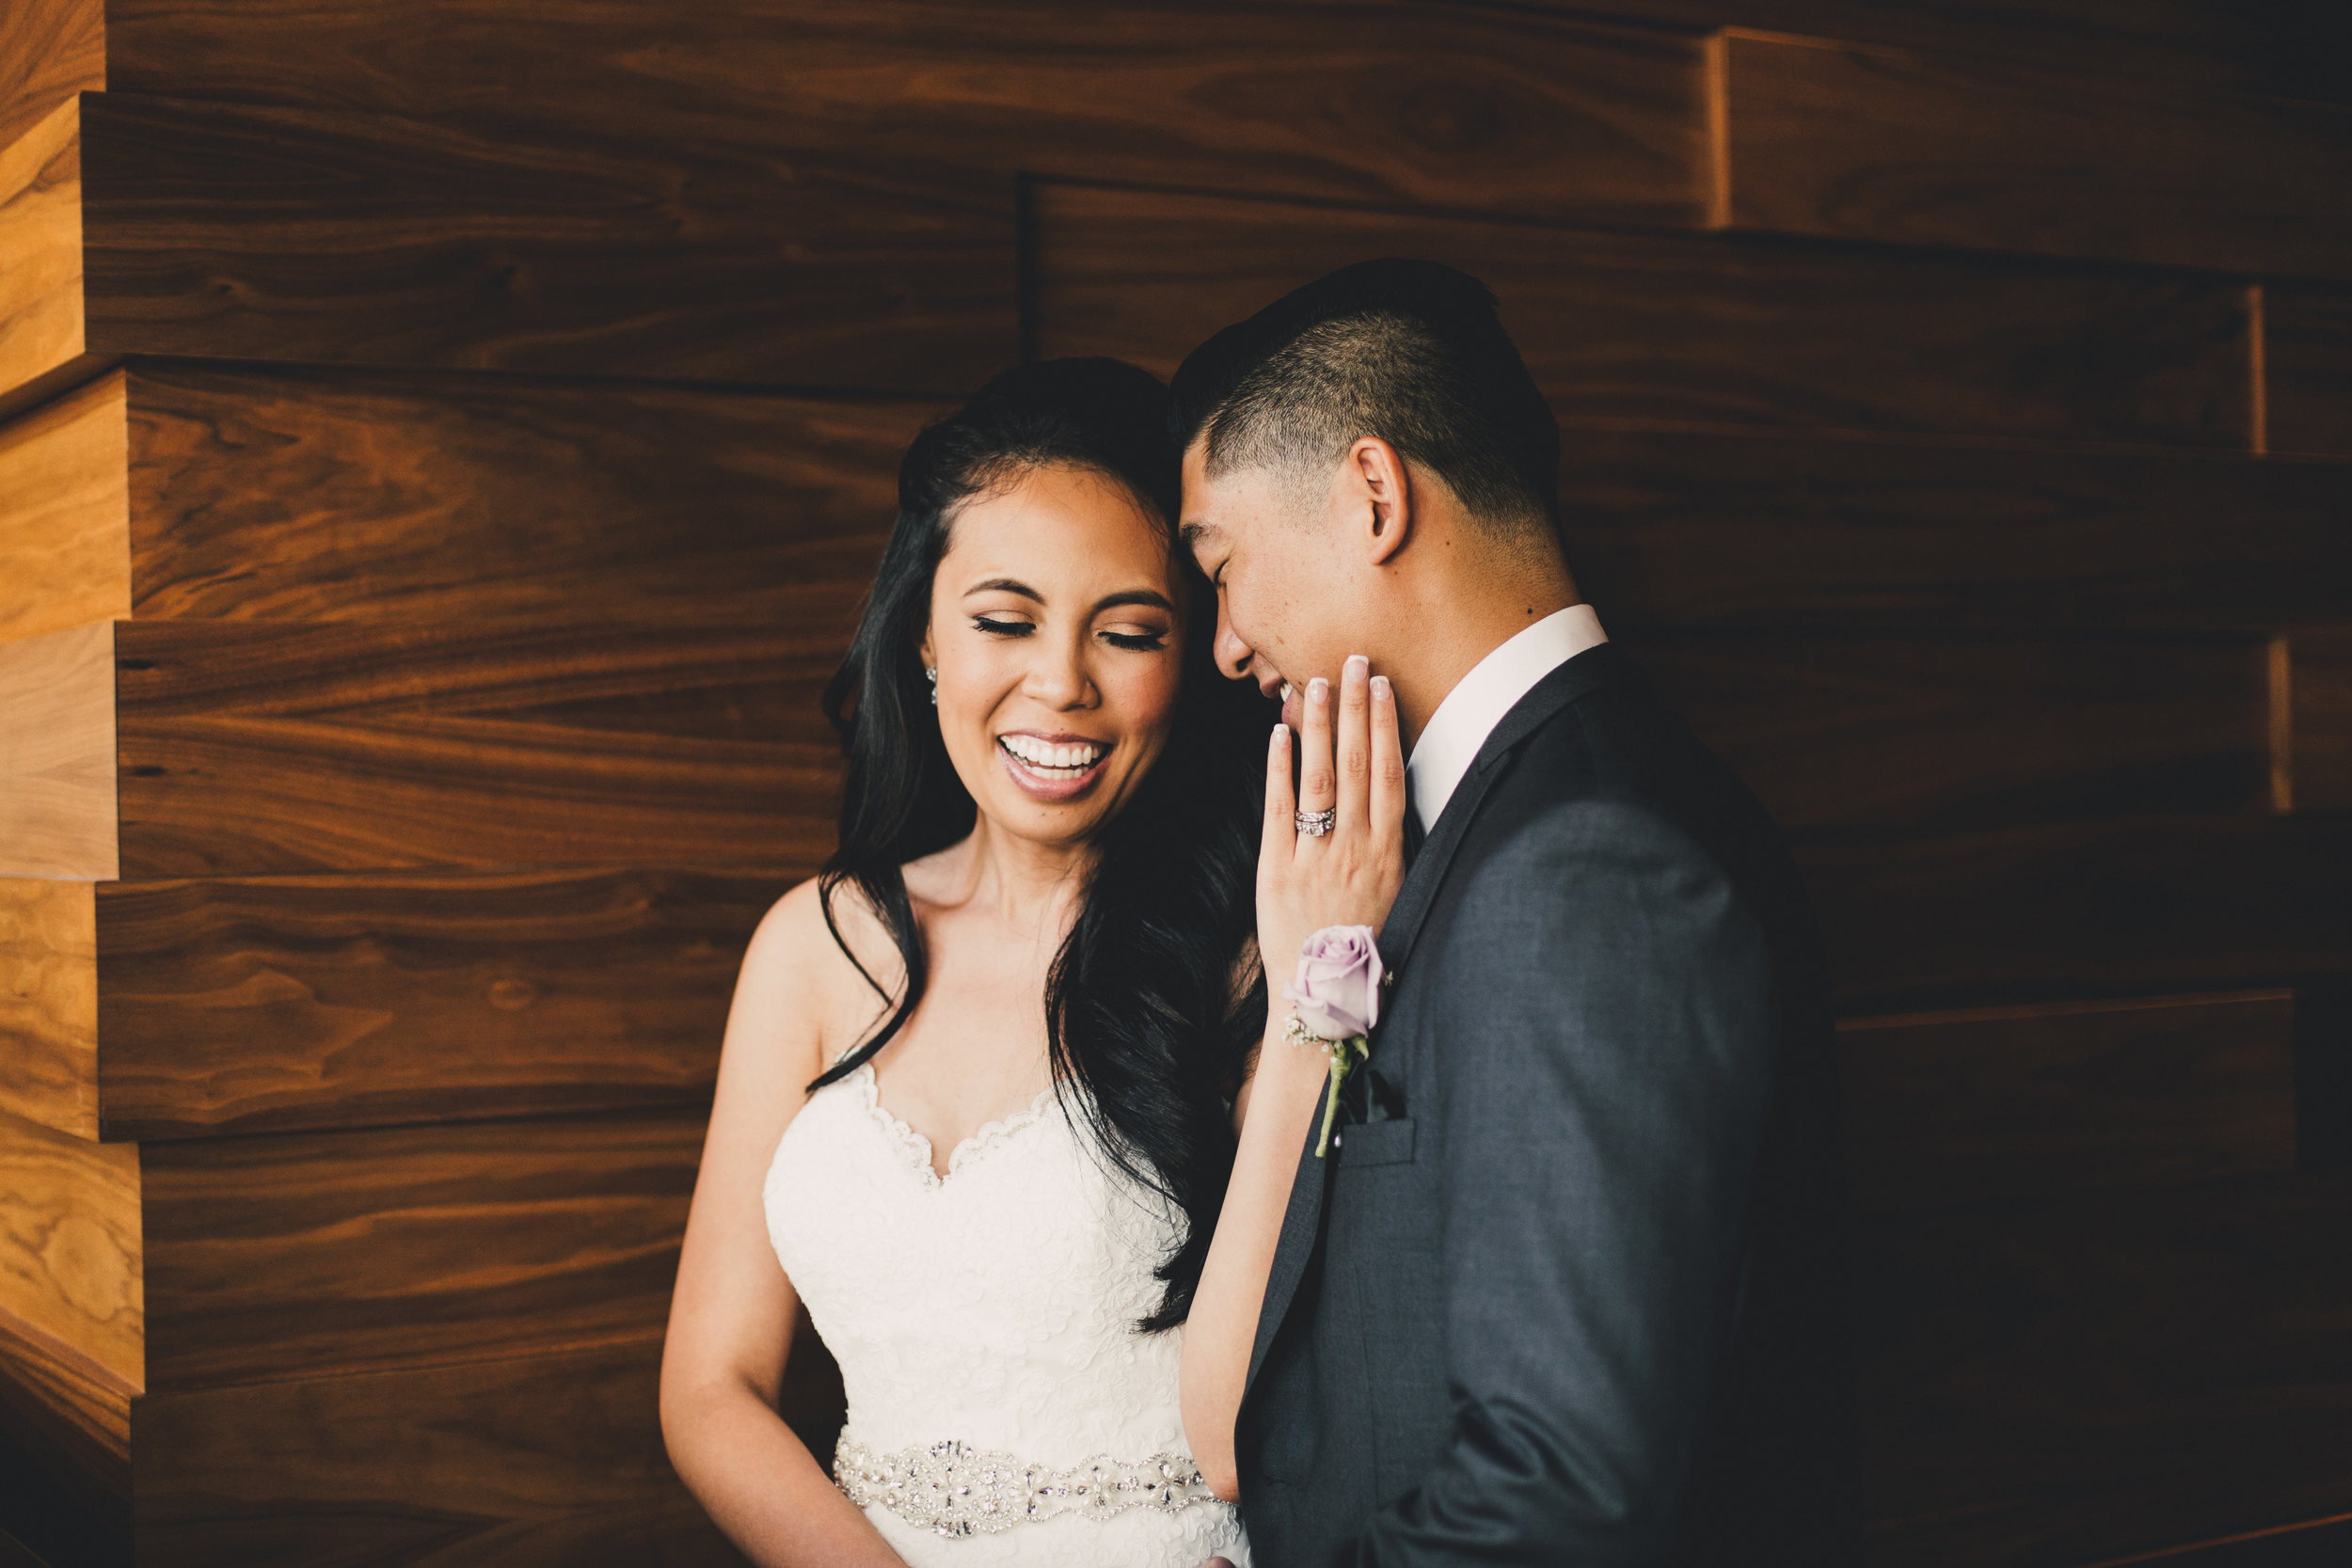 Madel + Andrew - Wedding, Natalie Griffo (124 of 169).jpg